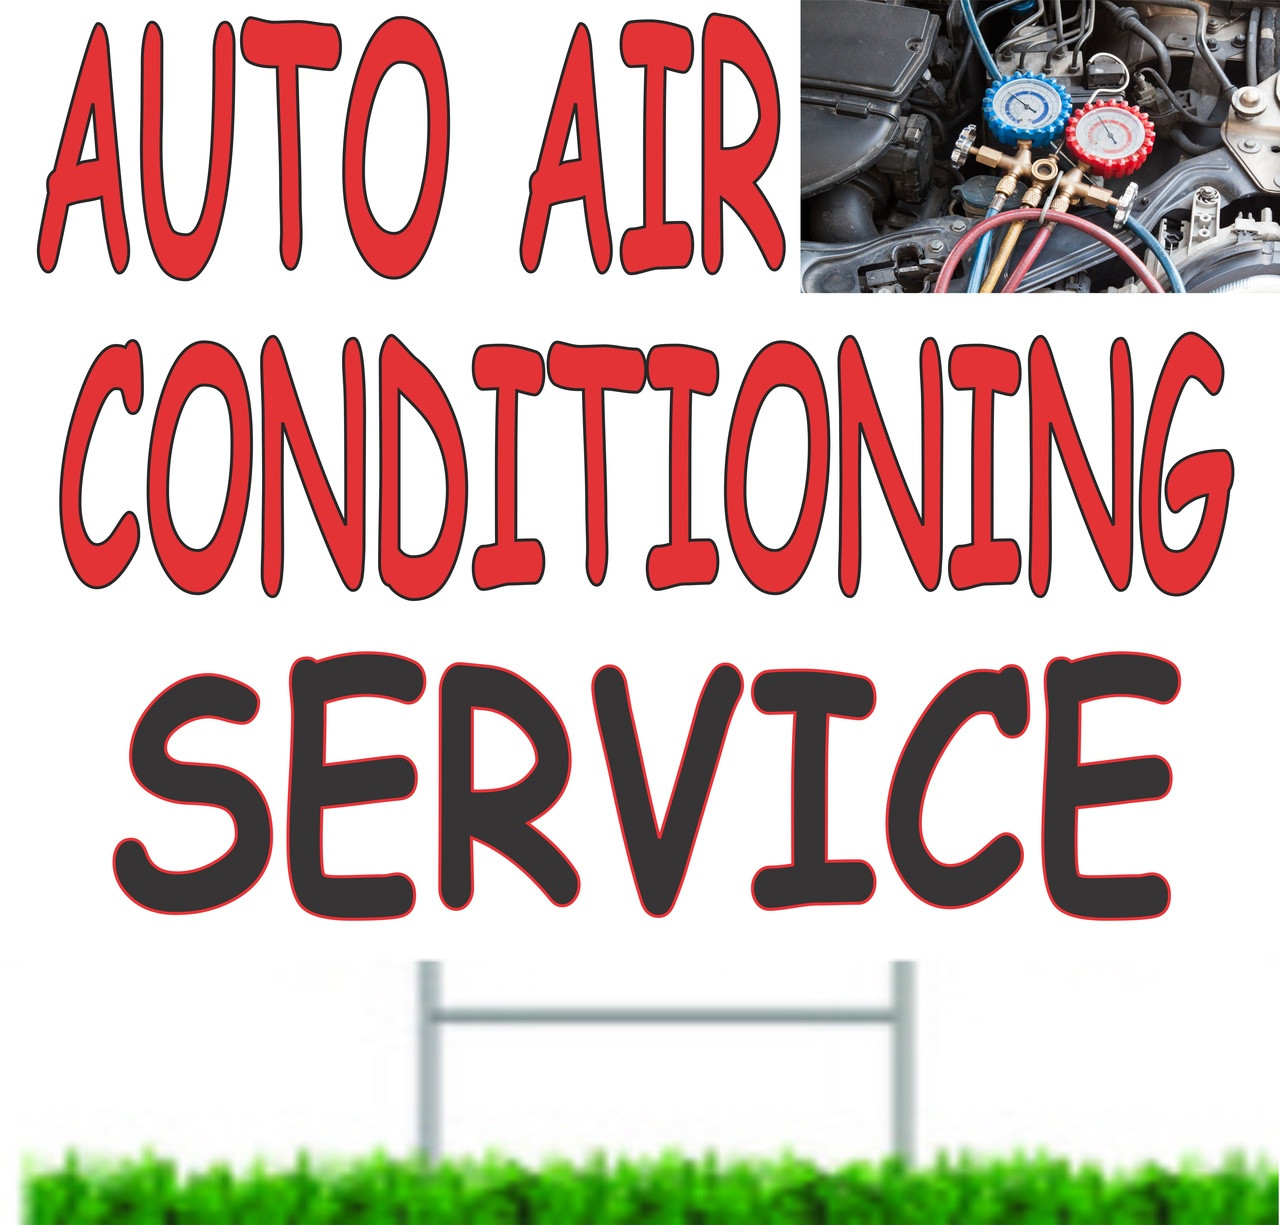 Auto Air Conditioning Service Curb/Yard Sign.